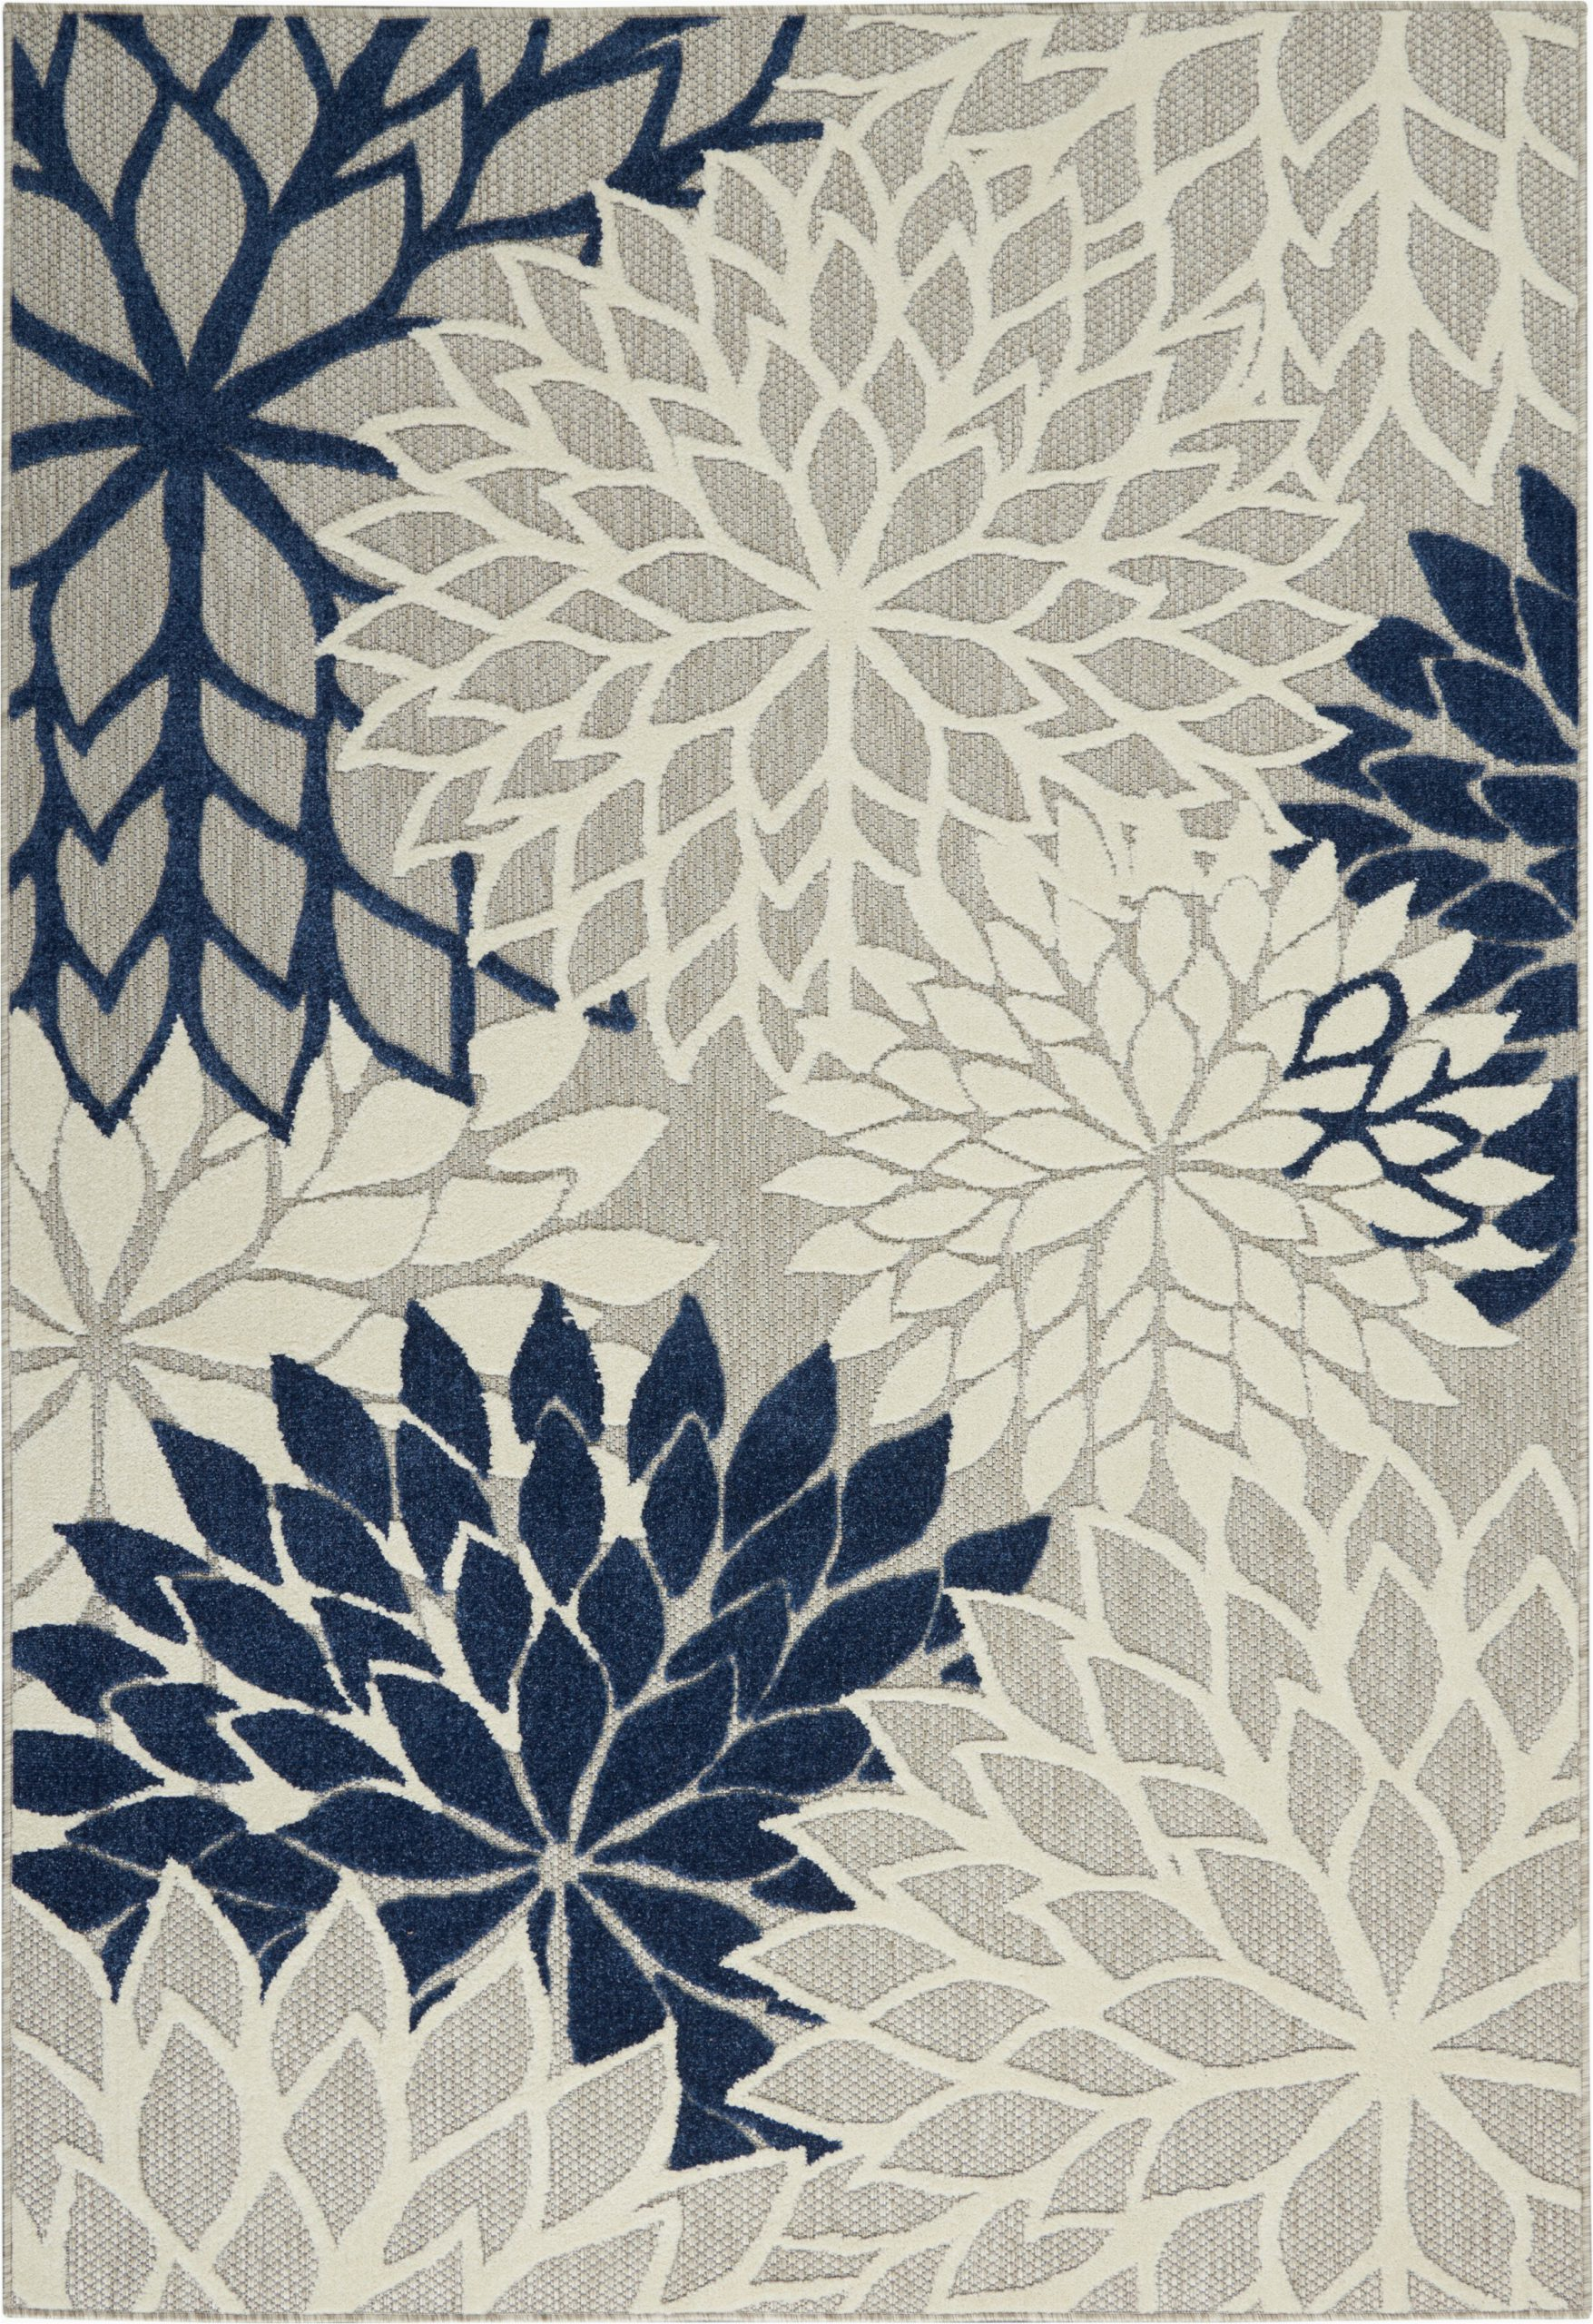 Navy Blue Floral area Rug Anallese Floral Navy area Rug